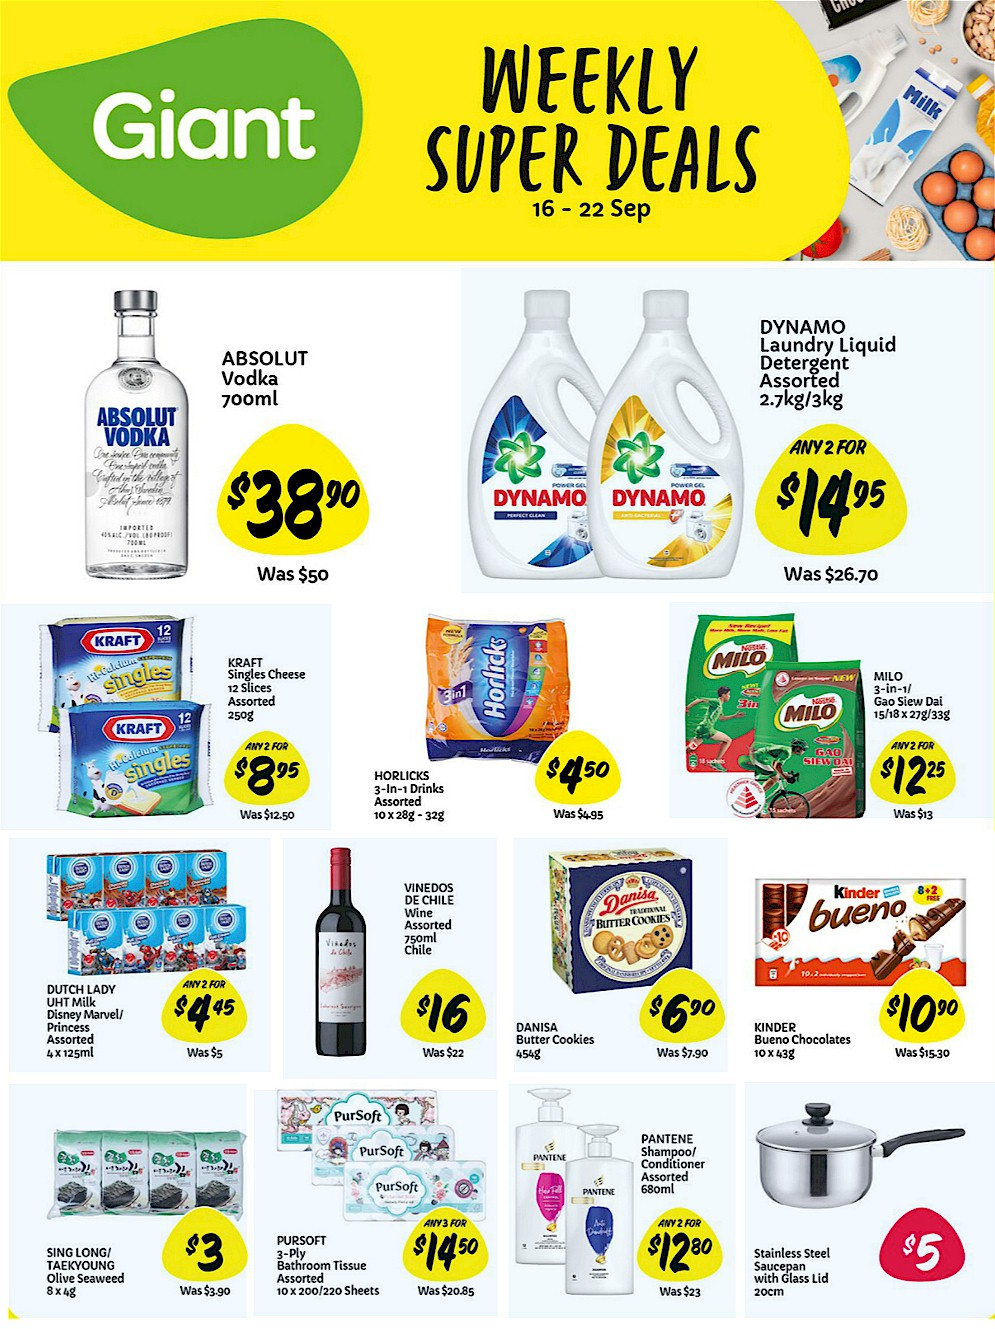 all-singapore-deals-Giant-Weekly-Super-Deals-1